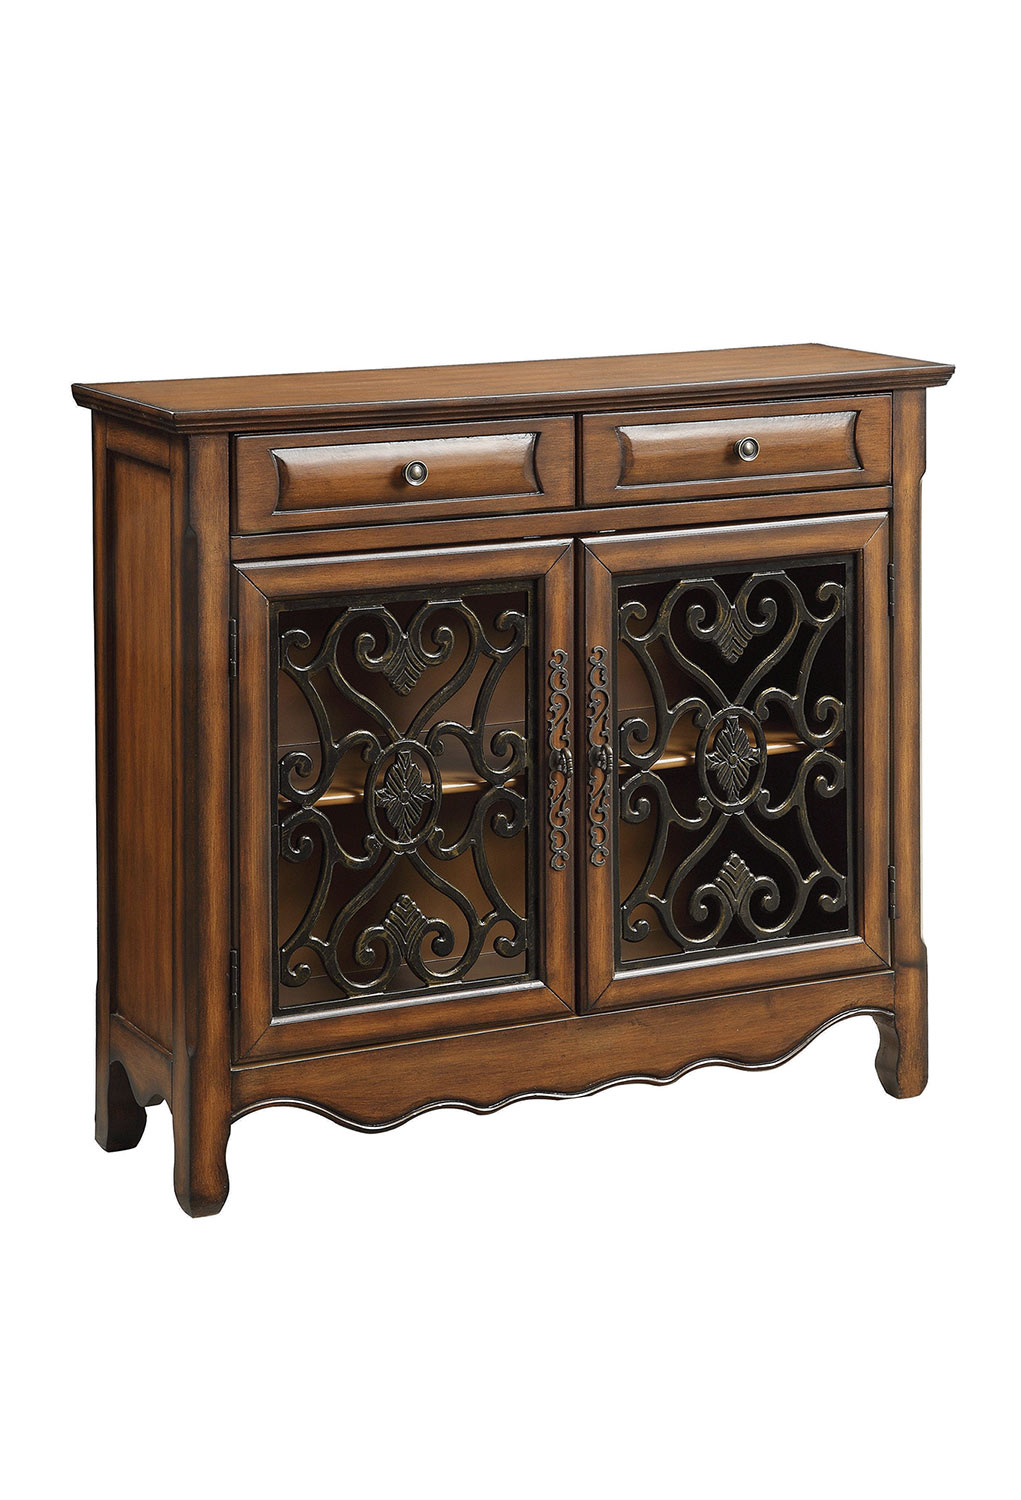 Coaster 950358 Accent Cabinet - Brown